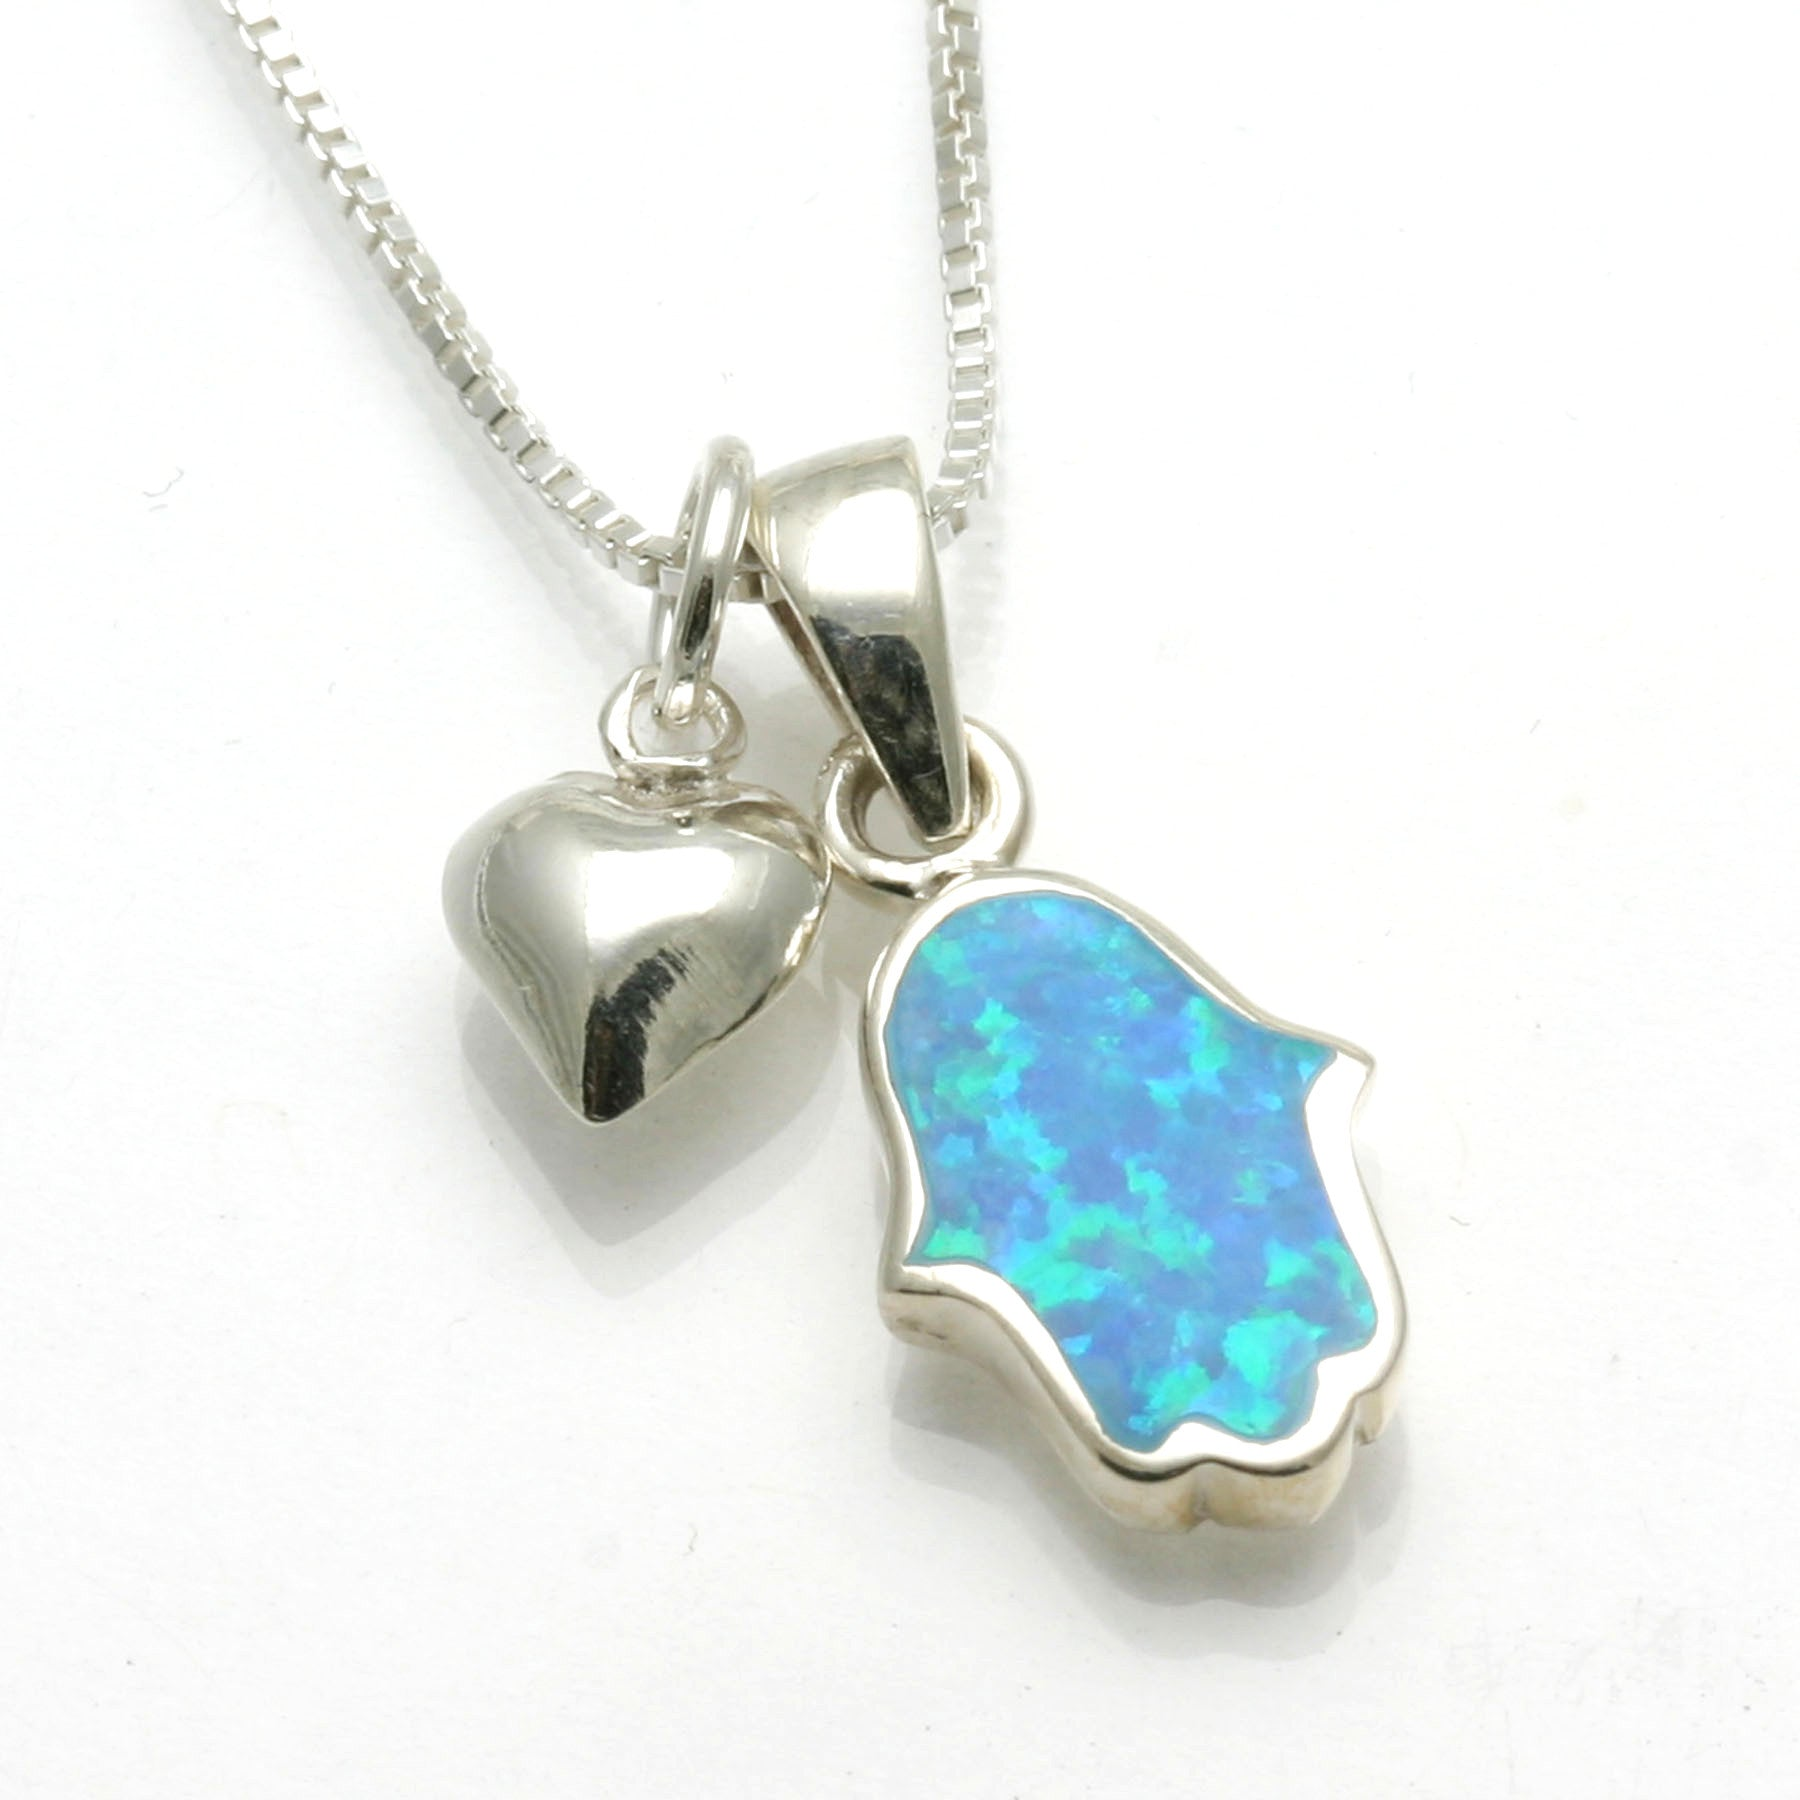 Smooth Opalite Pendant on Sterling Silver Chain Opalite Sterling Silver Necklace